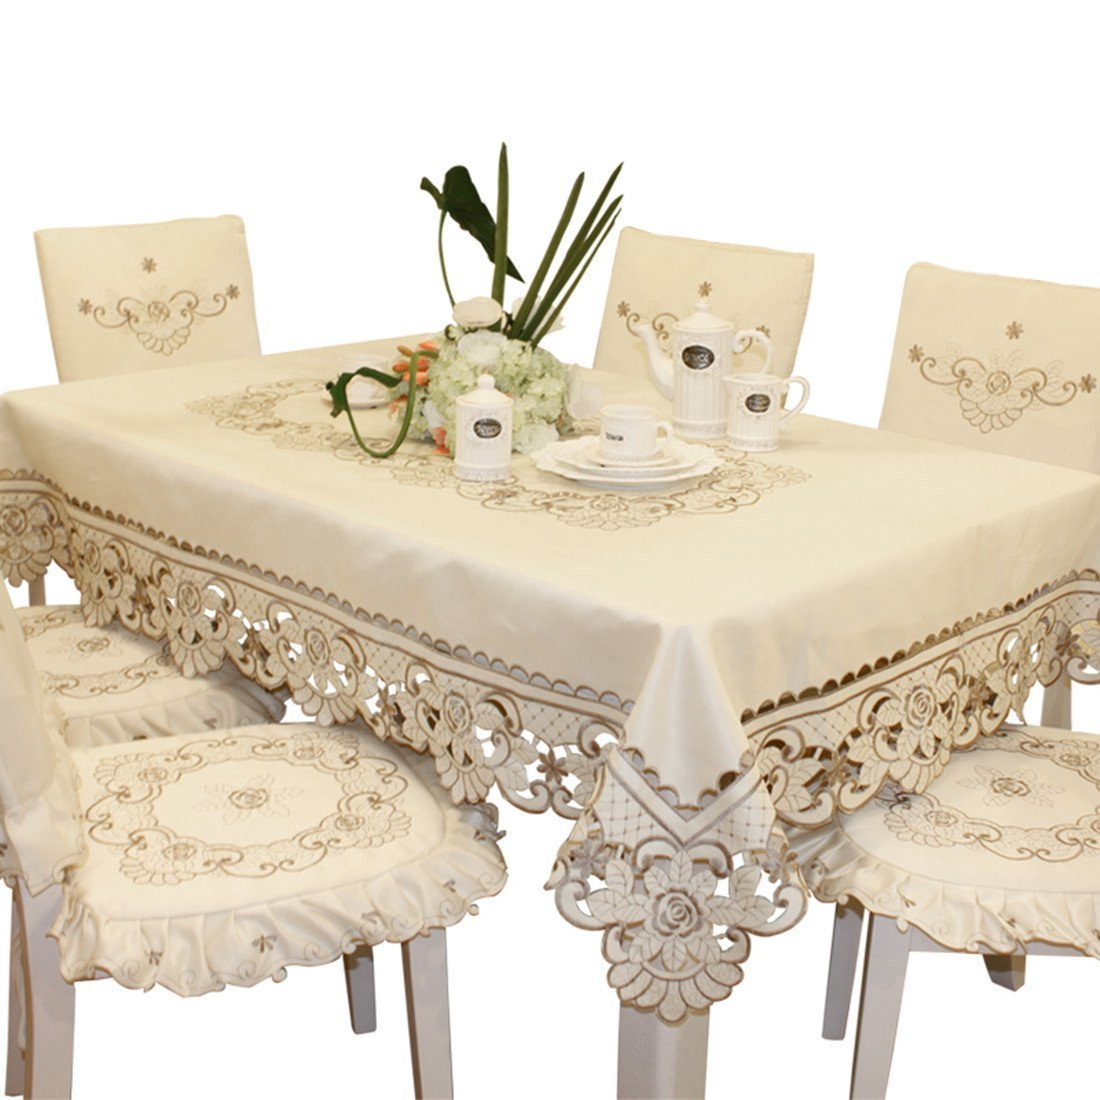 Brown Flower Embroidered lace Cream Tablecloth Rectangular 60 inch x 86 inch Approx Multi